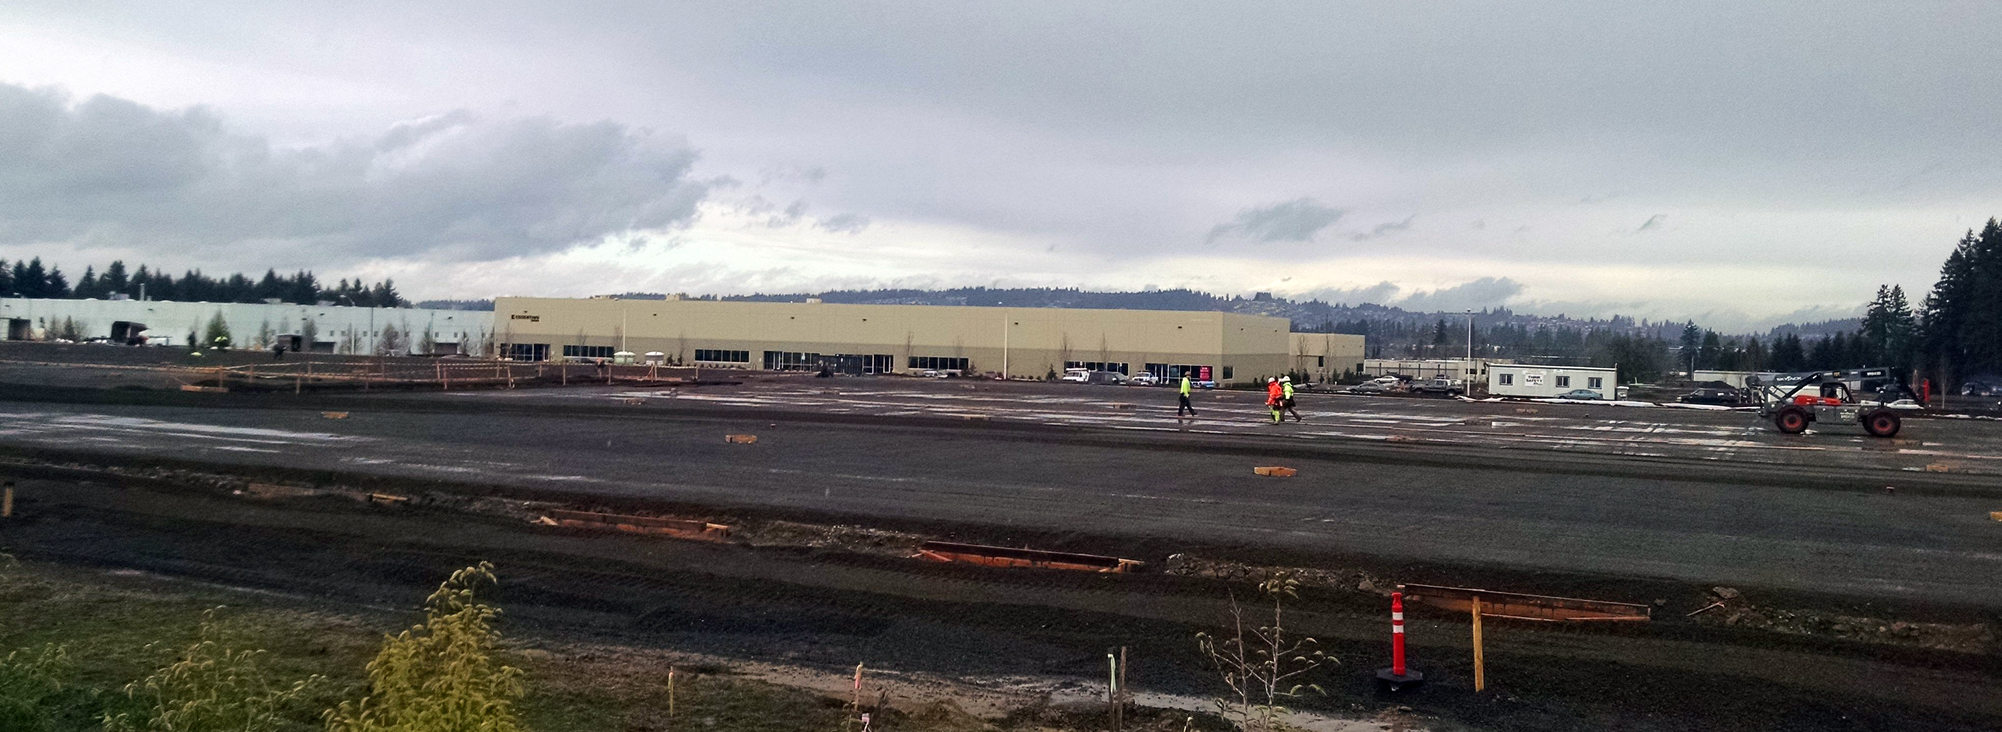 Tualatin Sherwood Road industrial development